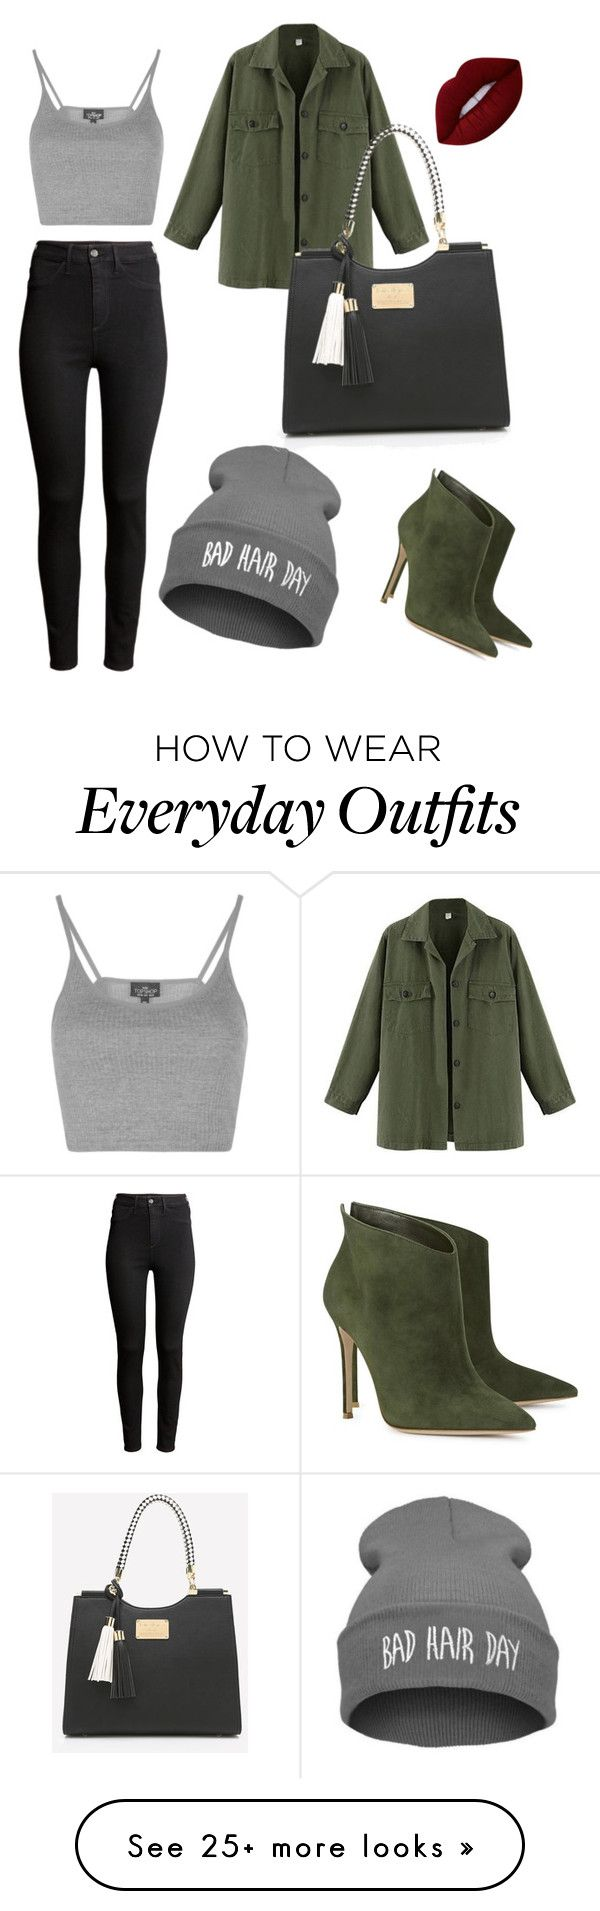 """Everyday outfit for the autumn"" by margauxoxo on Polyvore featuring H&M, Gianvito Rossi, Topshop and Lime Crime"